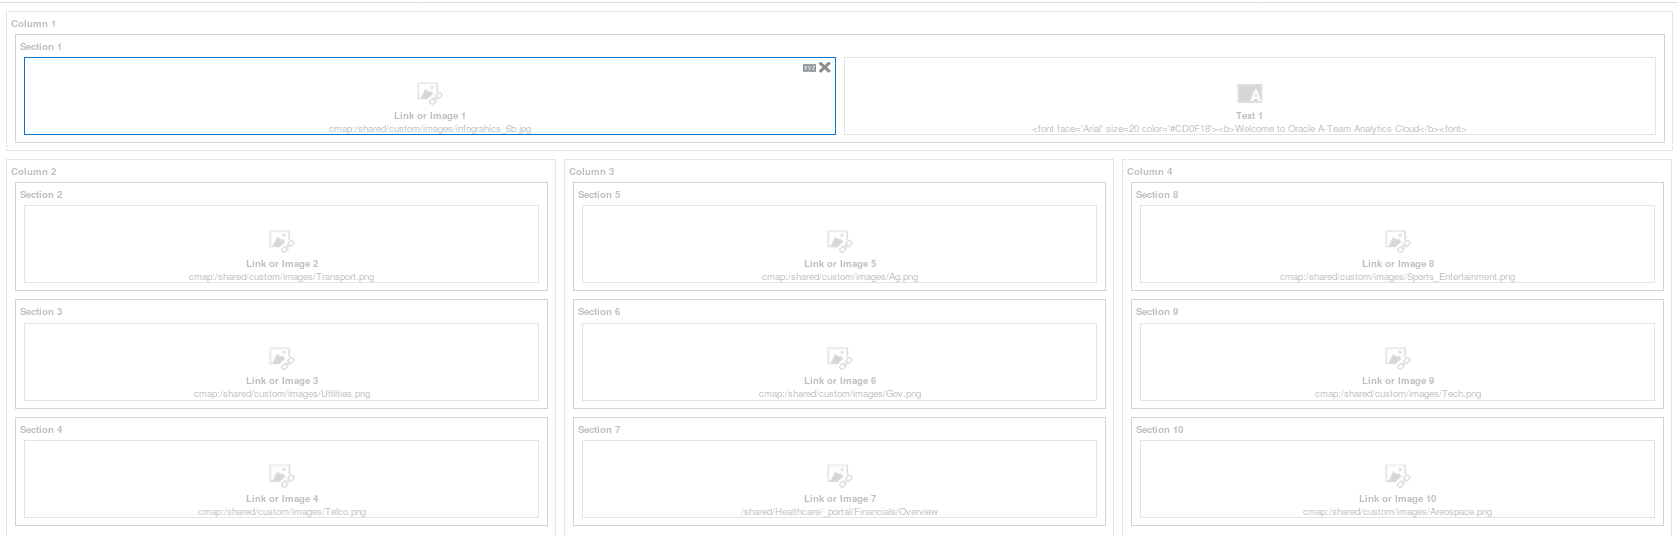 Creating a Dashboard Landing Navigation Page in Oracle